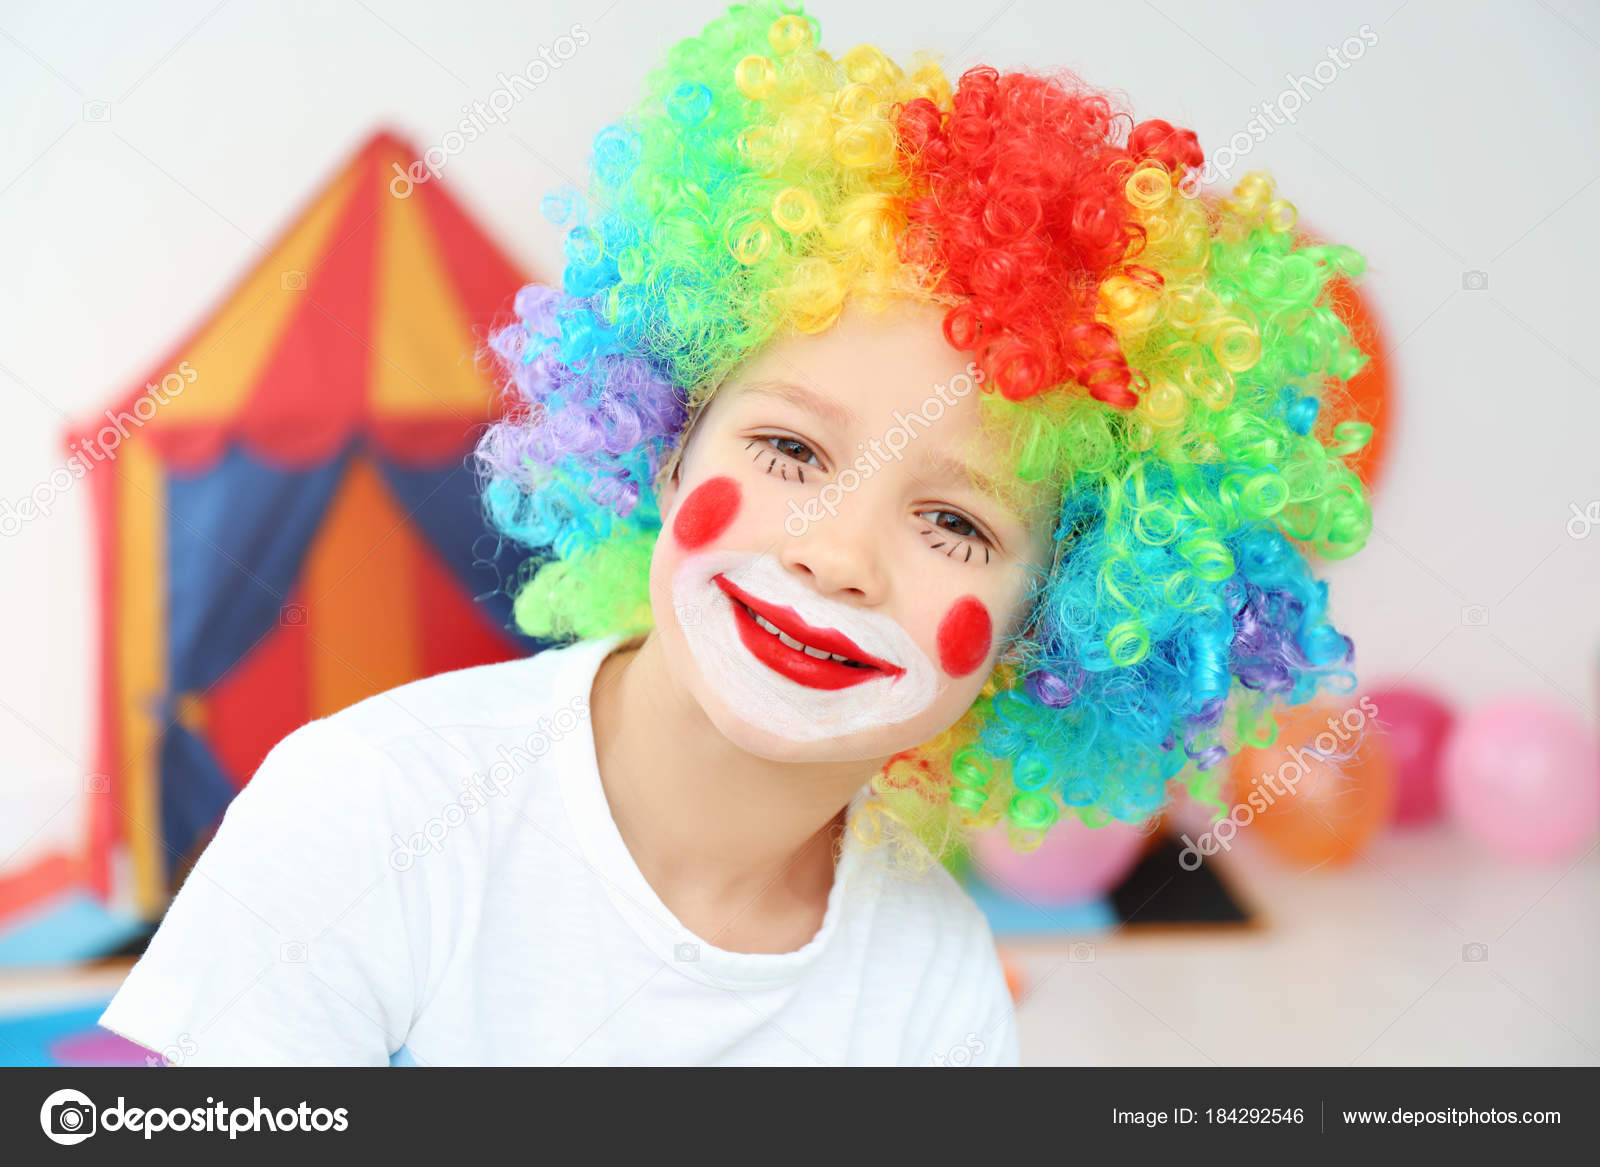 Cute little boy with clown makeup in rainbow wig indoors. April fool's day celebration– stock image